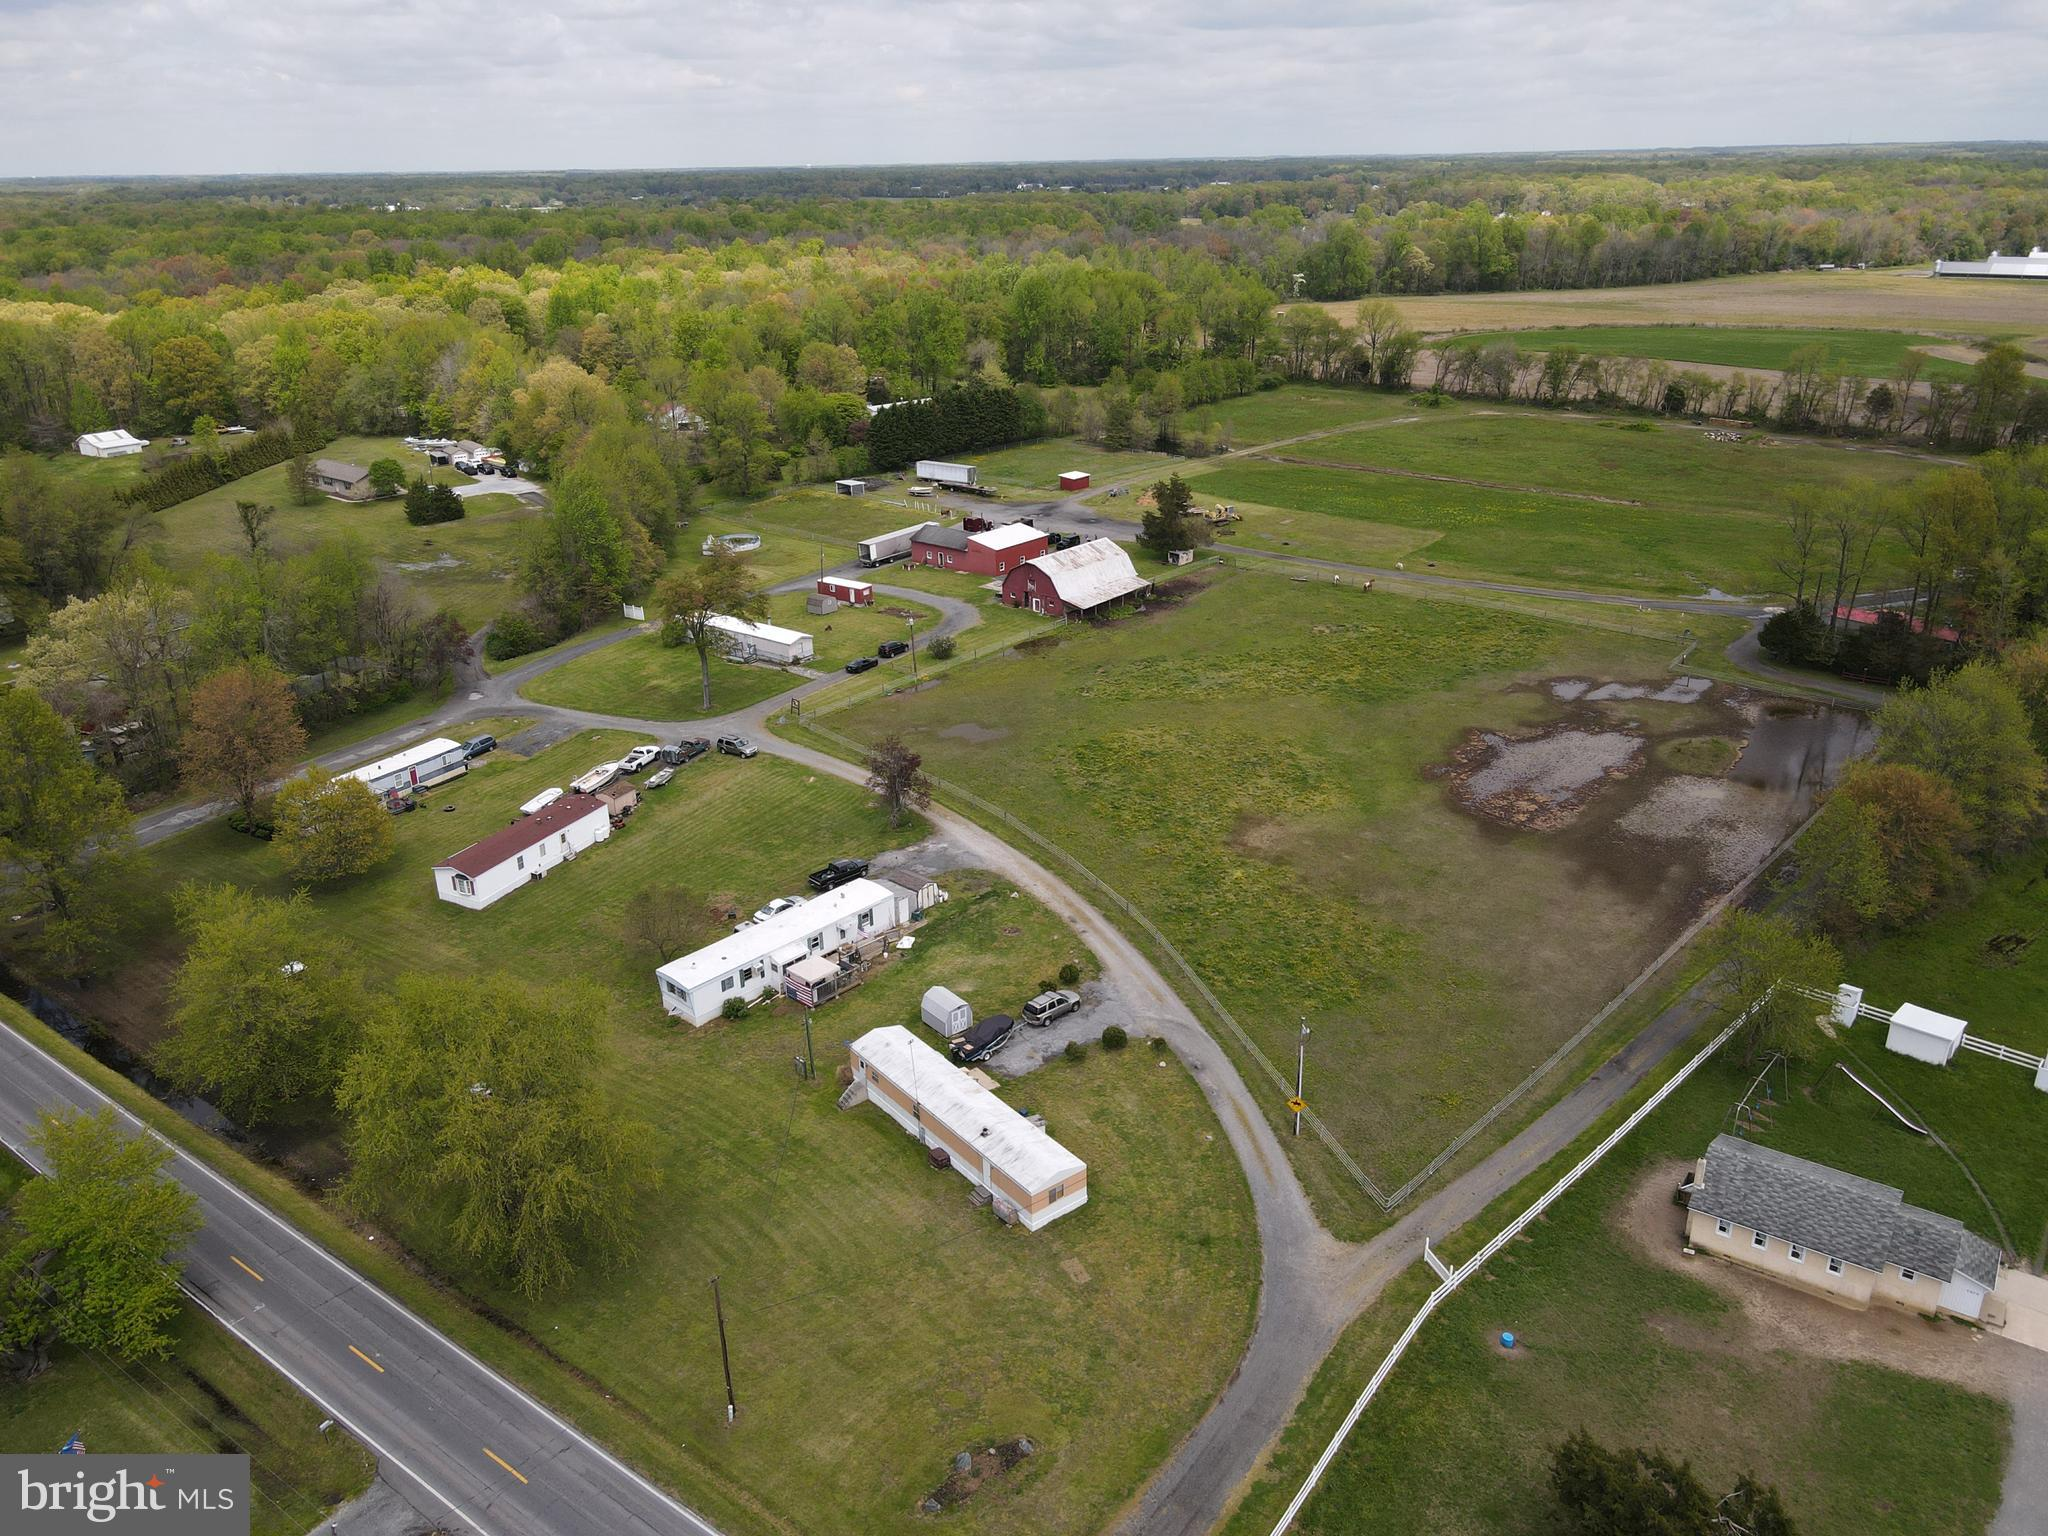 There are tons of possibilities and potential on this income producing farm listing.  Est 400 ft of road frontage with three already subdivided lots! Two 1/2 acres and one  3/4 acre  with septic and electric  already in place. All of this in addition to the 13.8 acre farm -  you don't want to miss out on this! There are two ponds perfect for fishing. There are six tenants already in place for $3500 monthly in land leased rentals. There are 6 septics and 2 deep wells. This farm comes with 1.4 acre of FLOATING (BN)commercial property! (Floating means it can be zoned business anywhere on the farm). You will find a list of potential approved businesses in disclosures. Perfect horse farm with 8 stalls in a  35x50  barn and three pastures, two run in sheds and a lean to off of the barn.The back fields are used for growing/baling hay. Currently there is a 18 wheeler/dump  trucking business  with  a 35x40  work shop on the property. This work shop has 2  large doors for pulling in vehicles/dump trucks on  concrete floors and electric throughout the building.   The main dwelling is currently tenant occupied  but has  retired trailer paperwork on permanent foundation.  Come see this unique and beautiful property! Co list agent is related to seller.((Watch the Video Tour above))